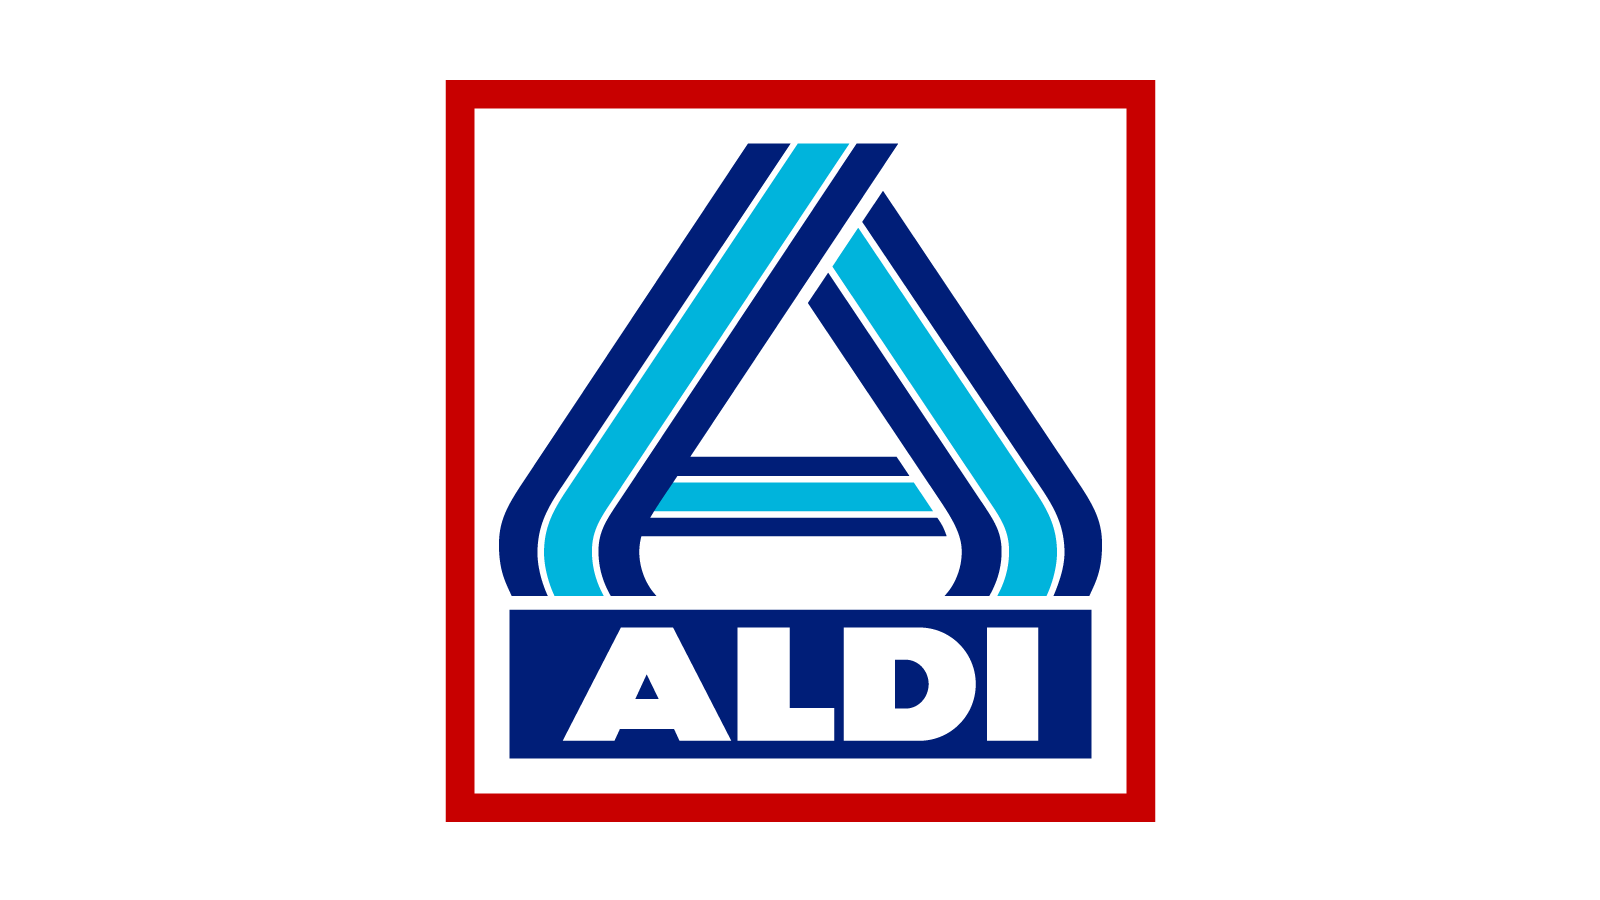 Aldi Keuken Referenties C Andr Cleaning En Renovatie